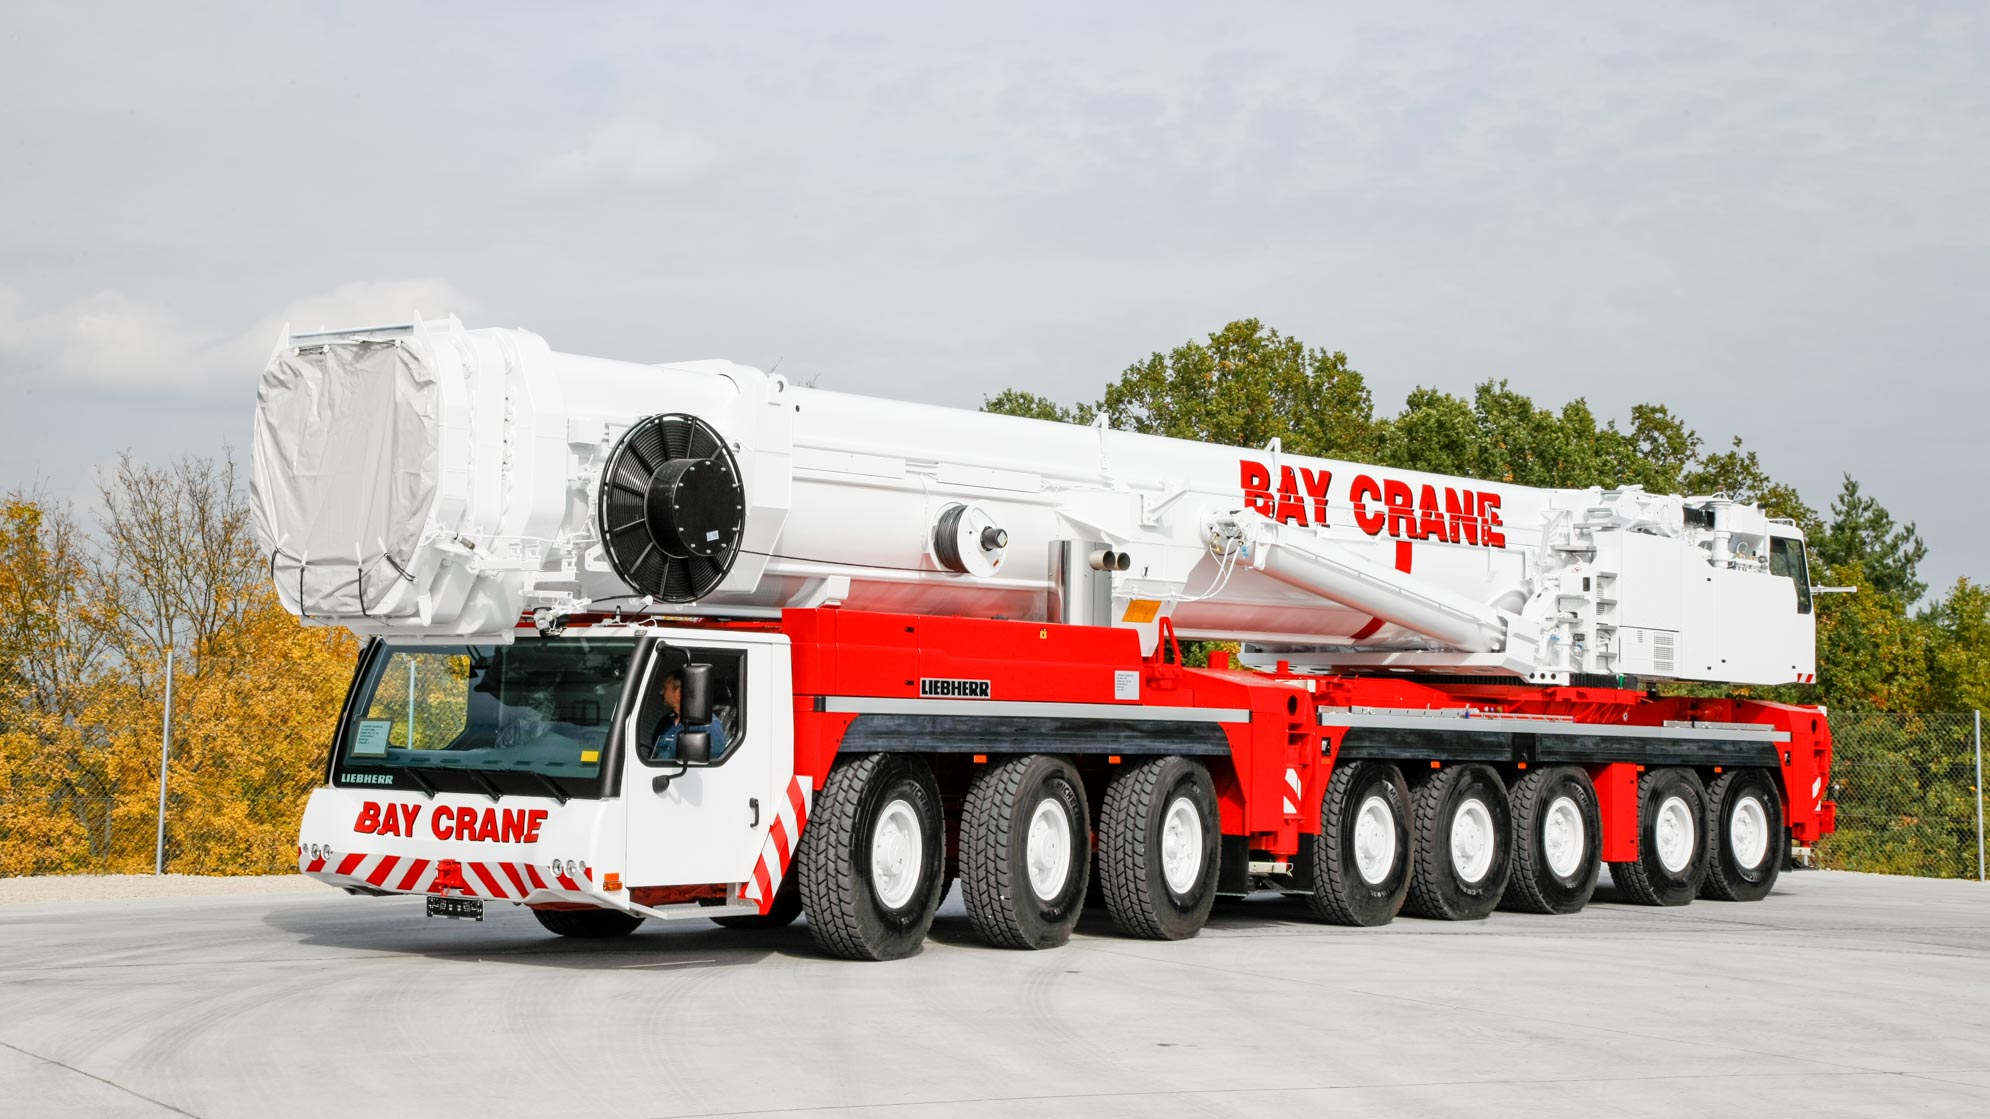 LTM 1500 all terrain crane with a hydraulic expandable